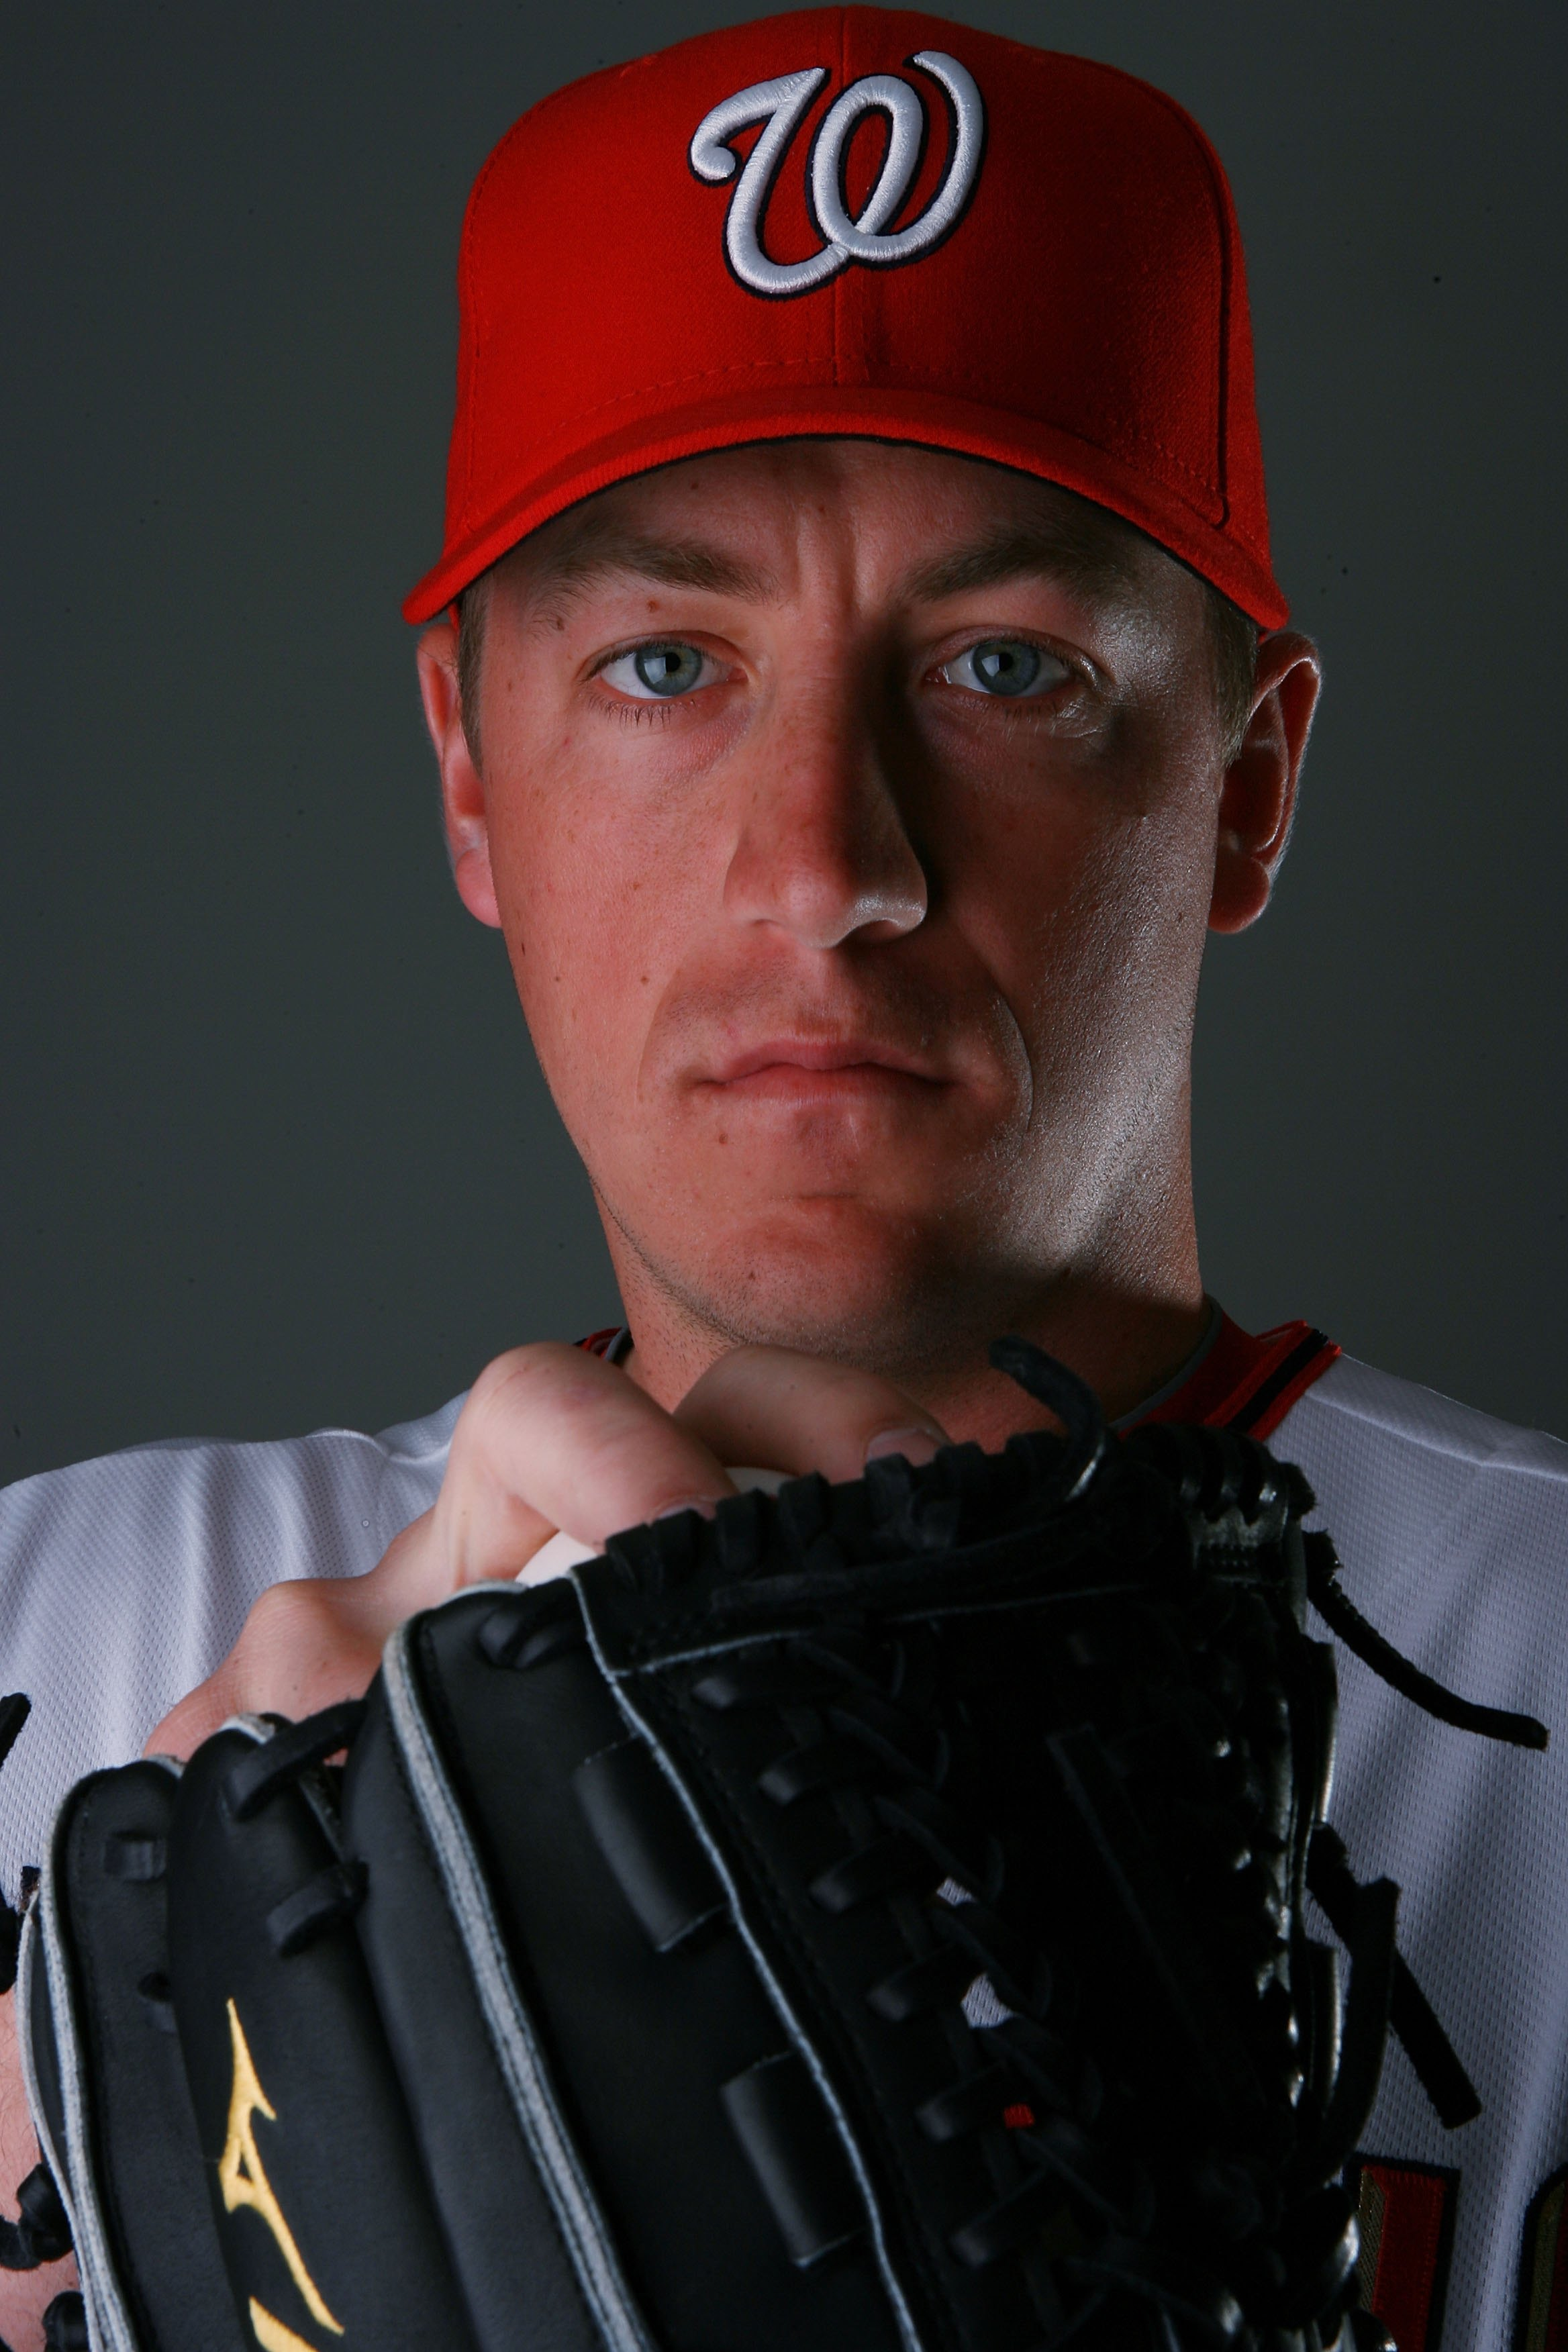 VIERA, FL - FEBRUARY 28:  Pitcher Jordan Zimmermann #27 of the Washington Nationals poses during photo day at Space Coast Stadium on February 28, 2010 in Viera, Florida.  (Photo by Doug Benc/Getty Images)